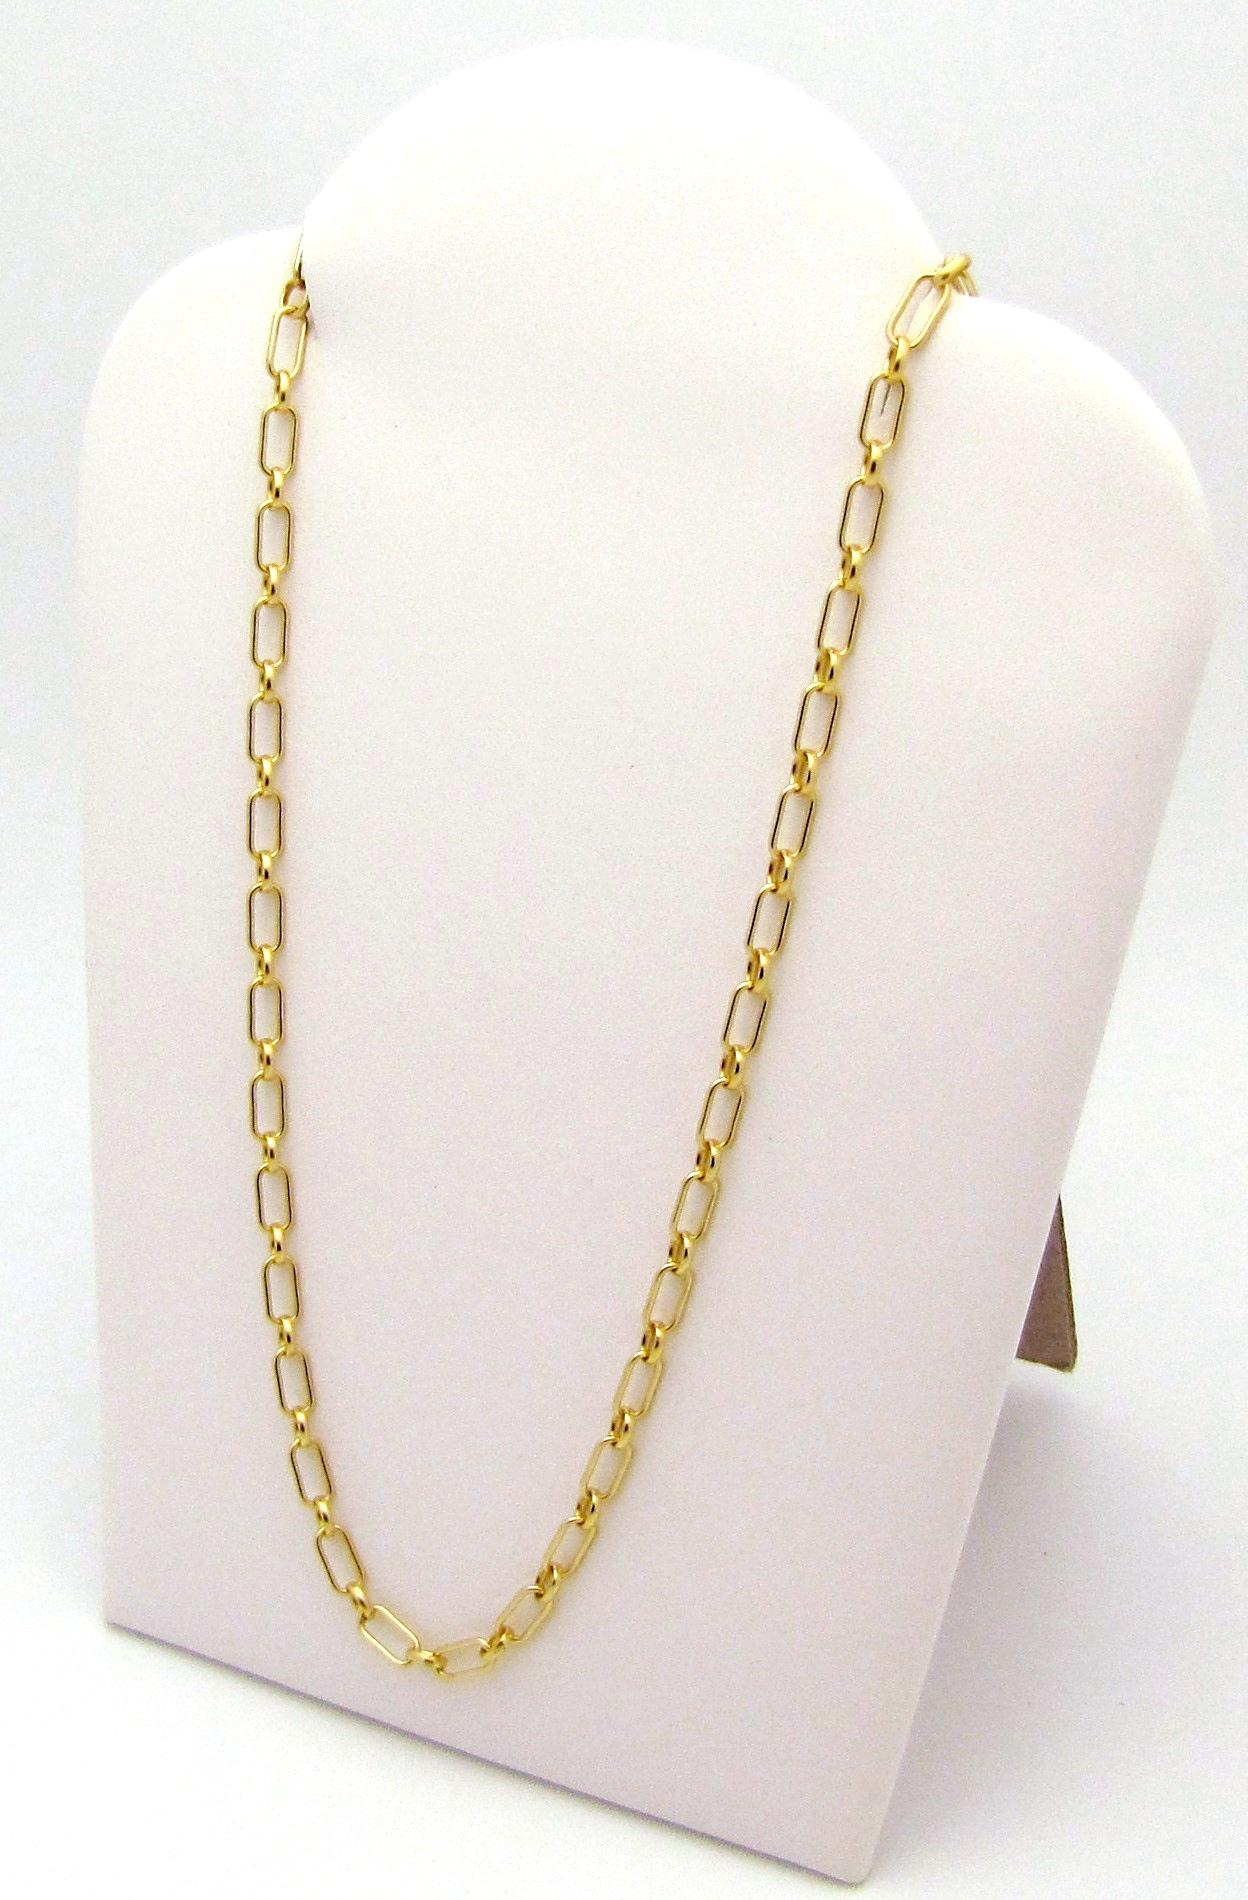 co authentic tiffany necklace lane ruby yellow charmalier oval gold item chain link